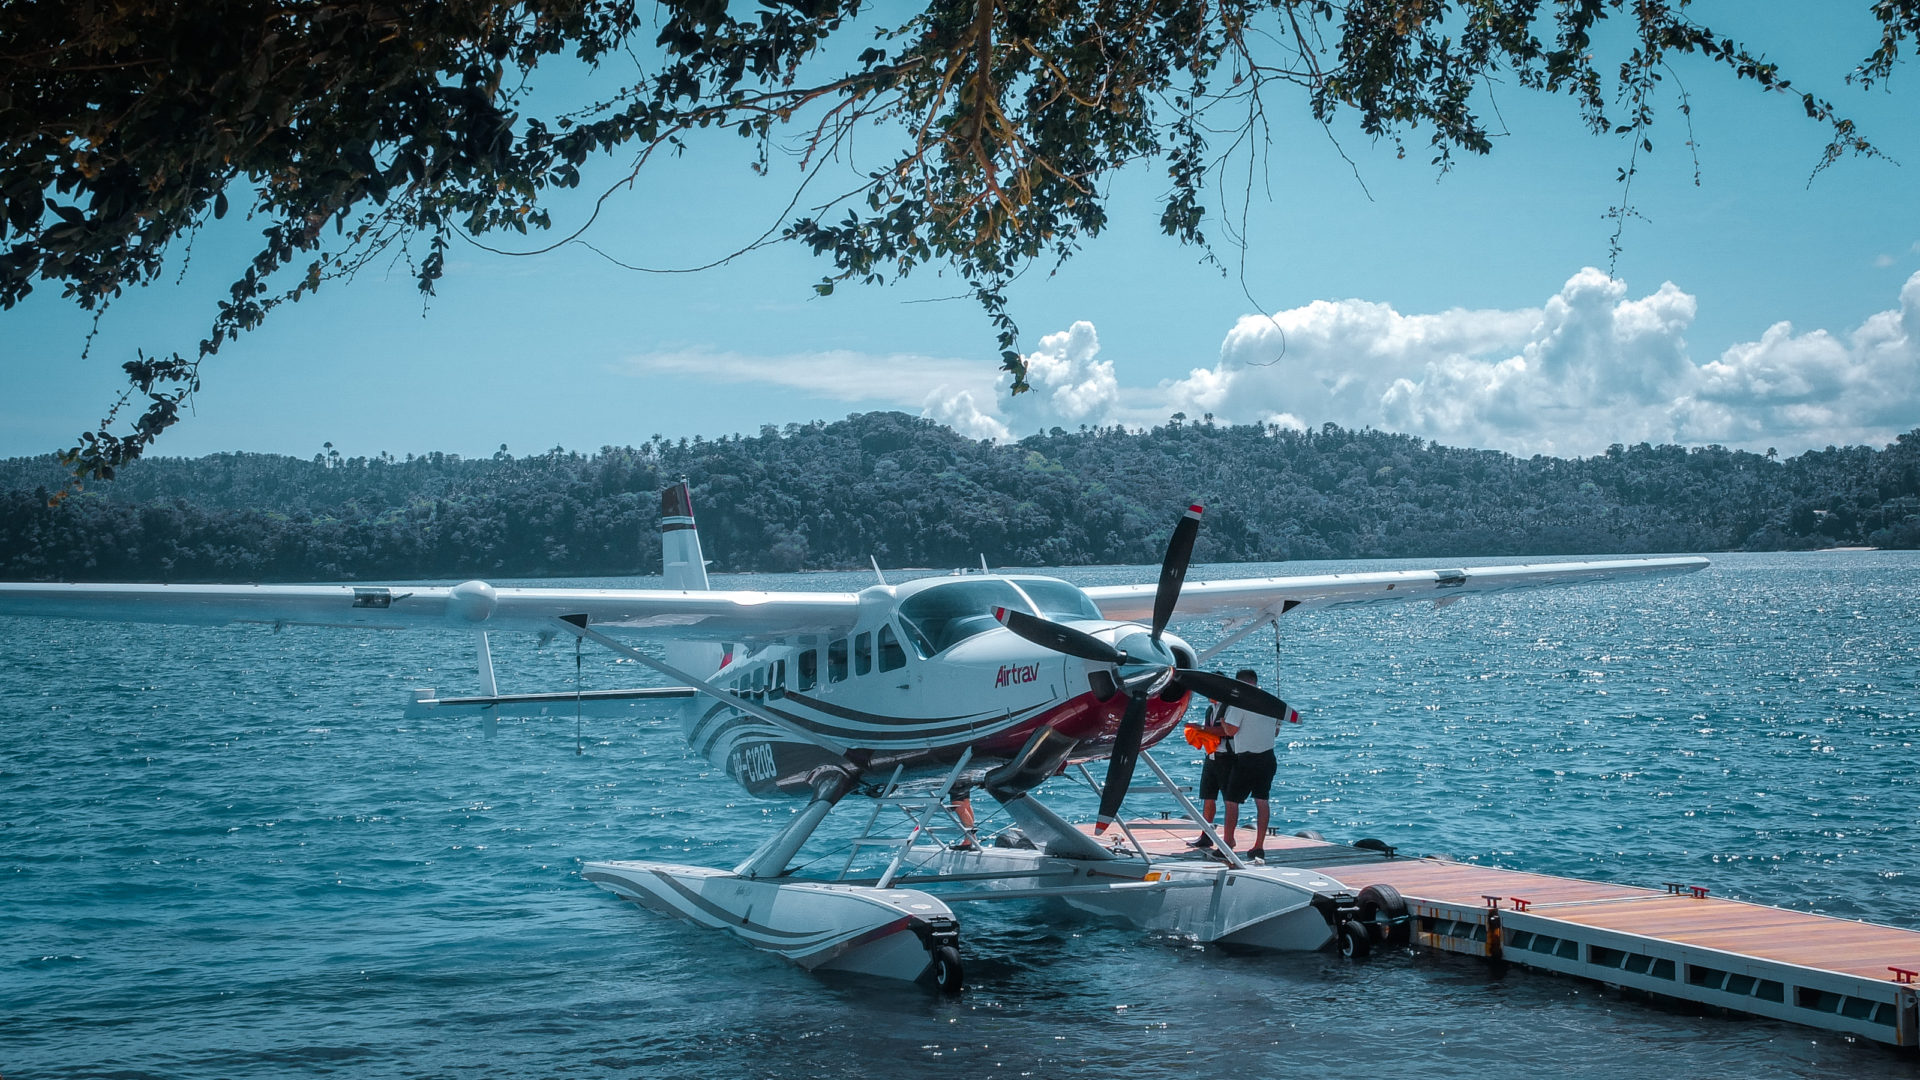 Manila to Puerto Galera in 35 mins: Flying with AirTrav Philippines | Seaplane Experience